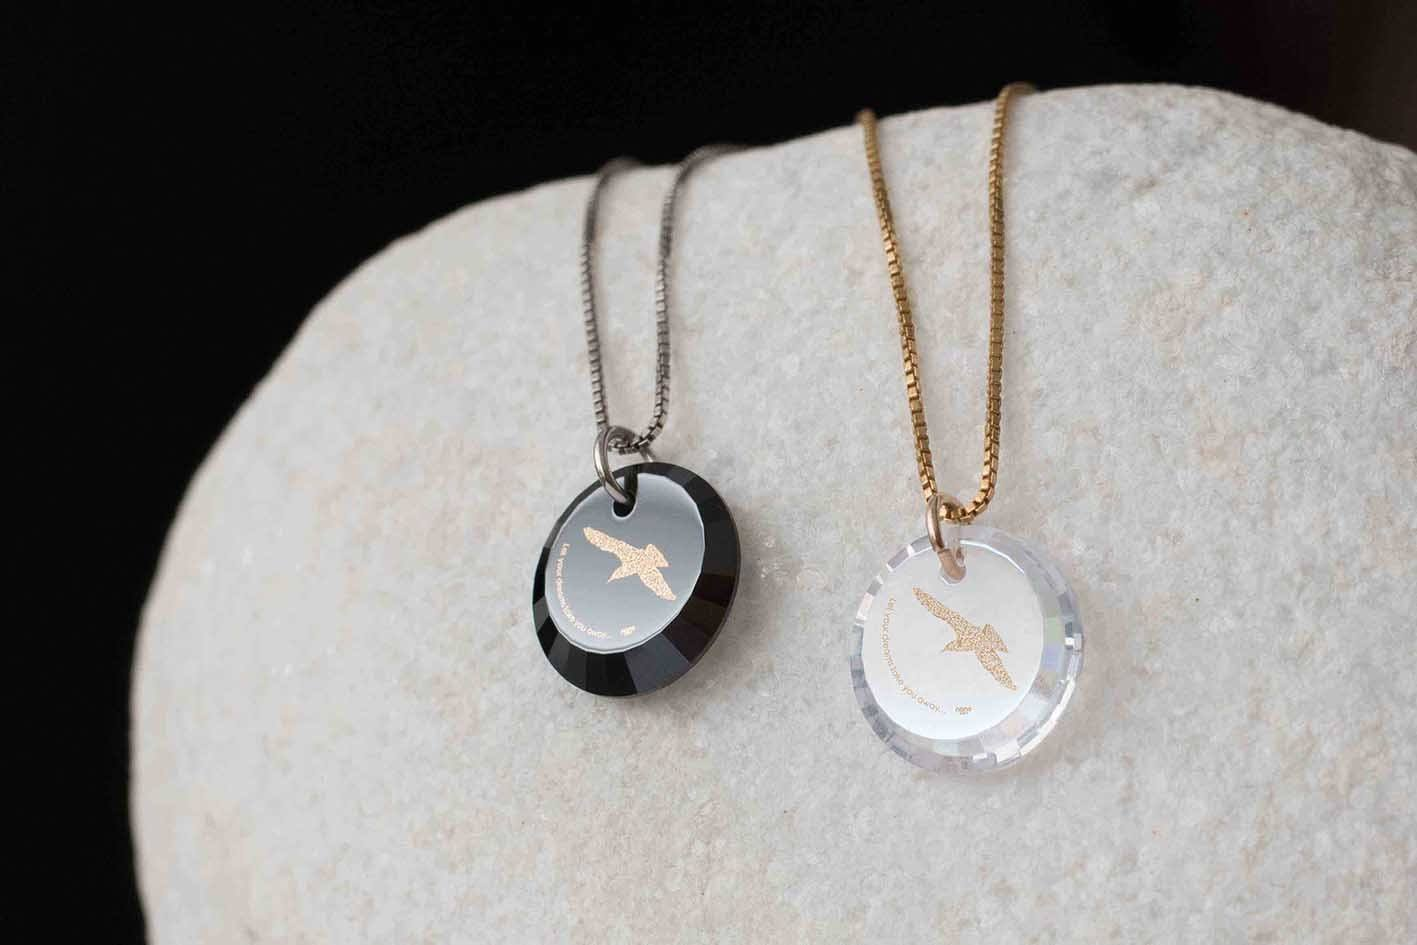 Christmas Gifts for Teens: Bird Jewelry Engraved, Daughter Necklace, Nano Jewelry